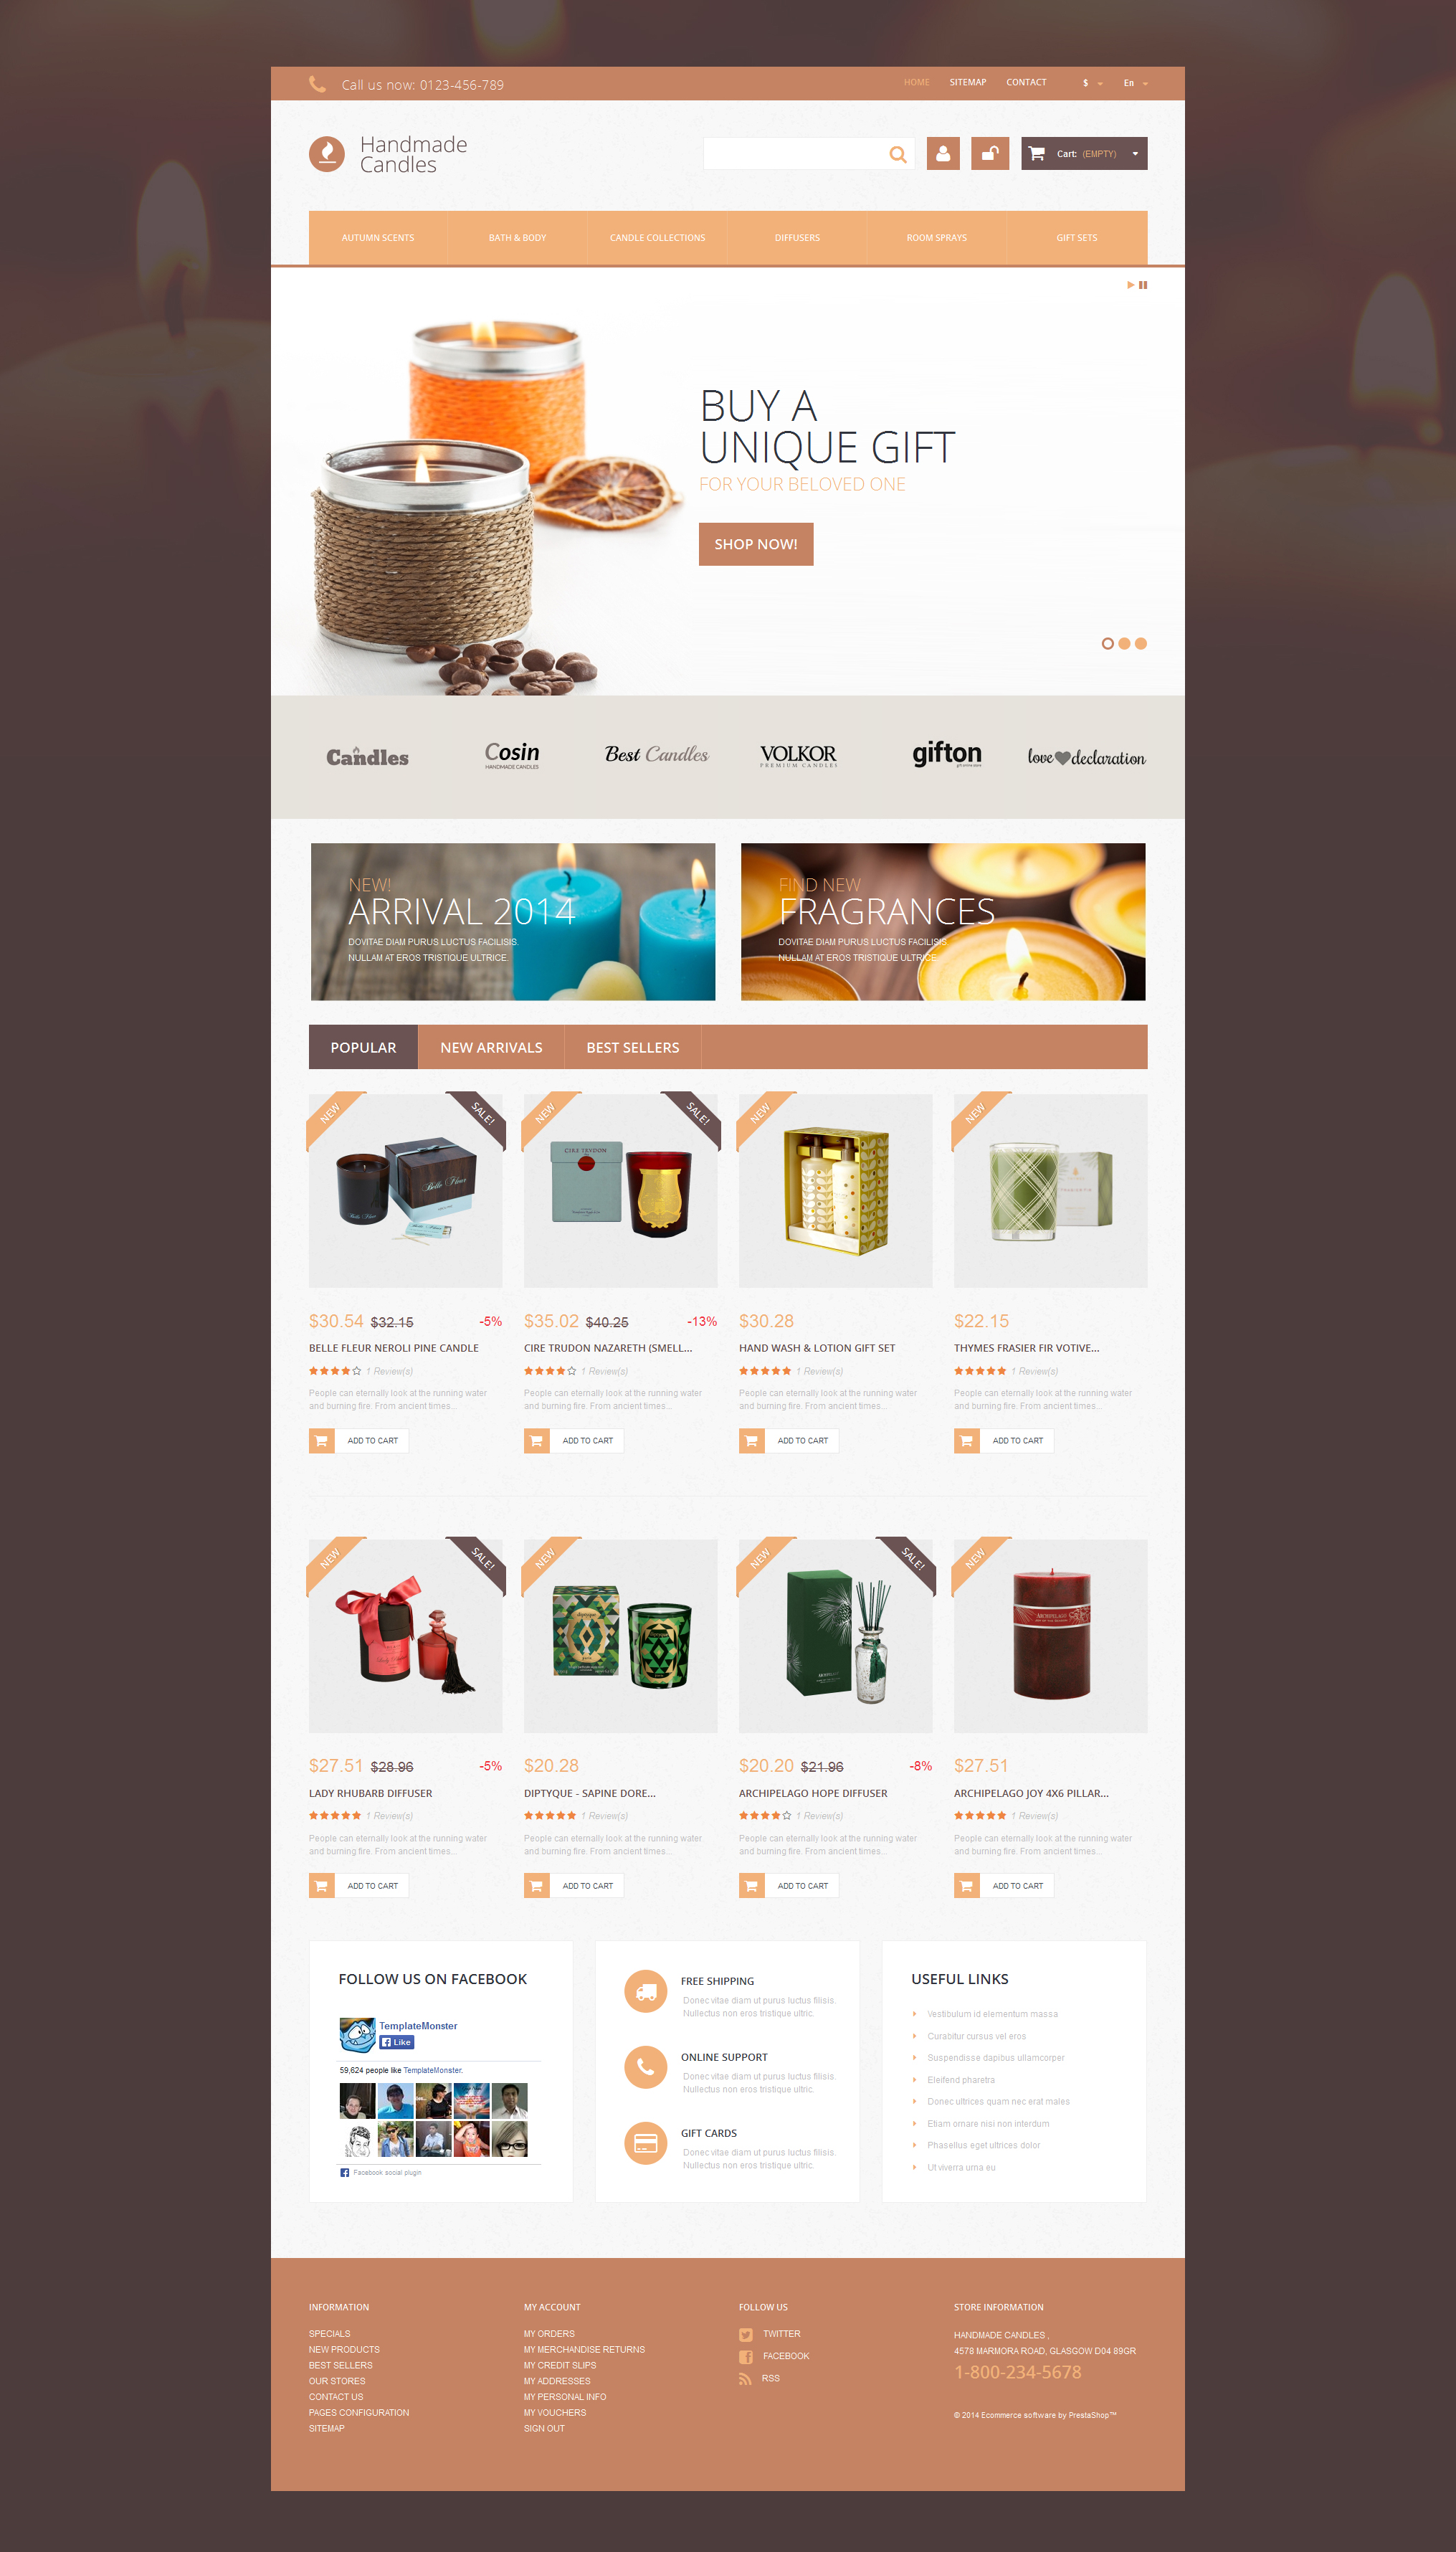 Handmade Candles PrestaShop Theme